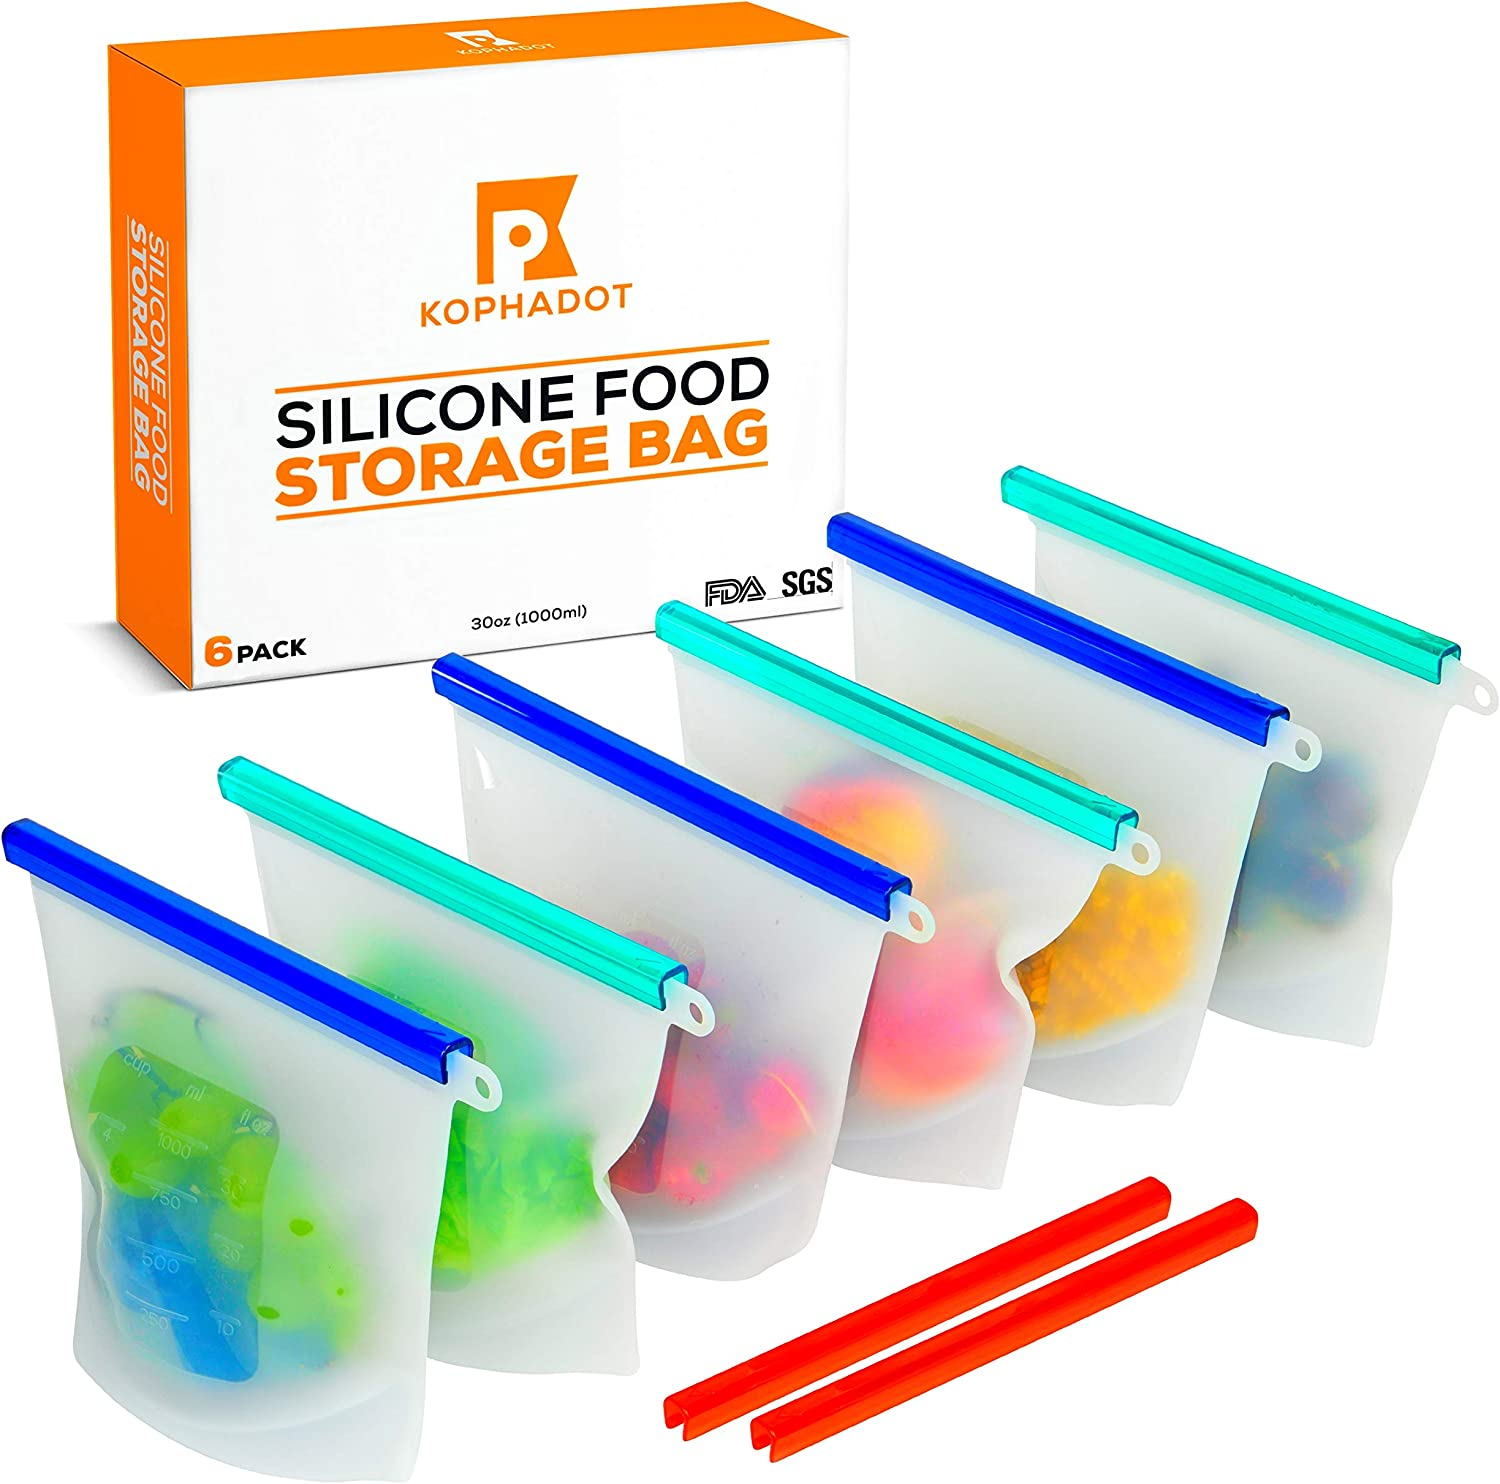 KOPHADOT Reusable Silicone Food Storage Bags - 6 Medium 30oz Transparent Silicone Food Bags & 8 Sealing Caps - Airtight & Leakproof Reusable Sandwich Bags 1000ml Food Preservation Bags